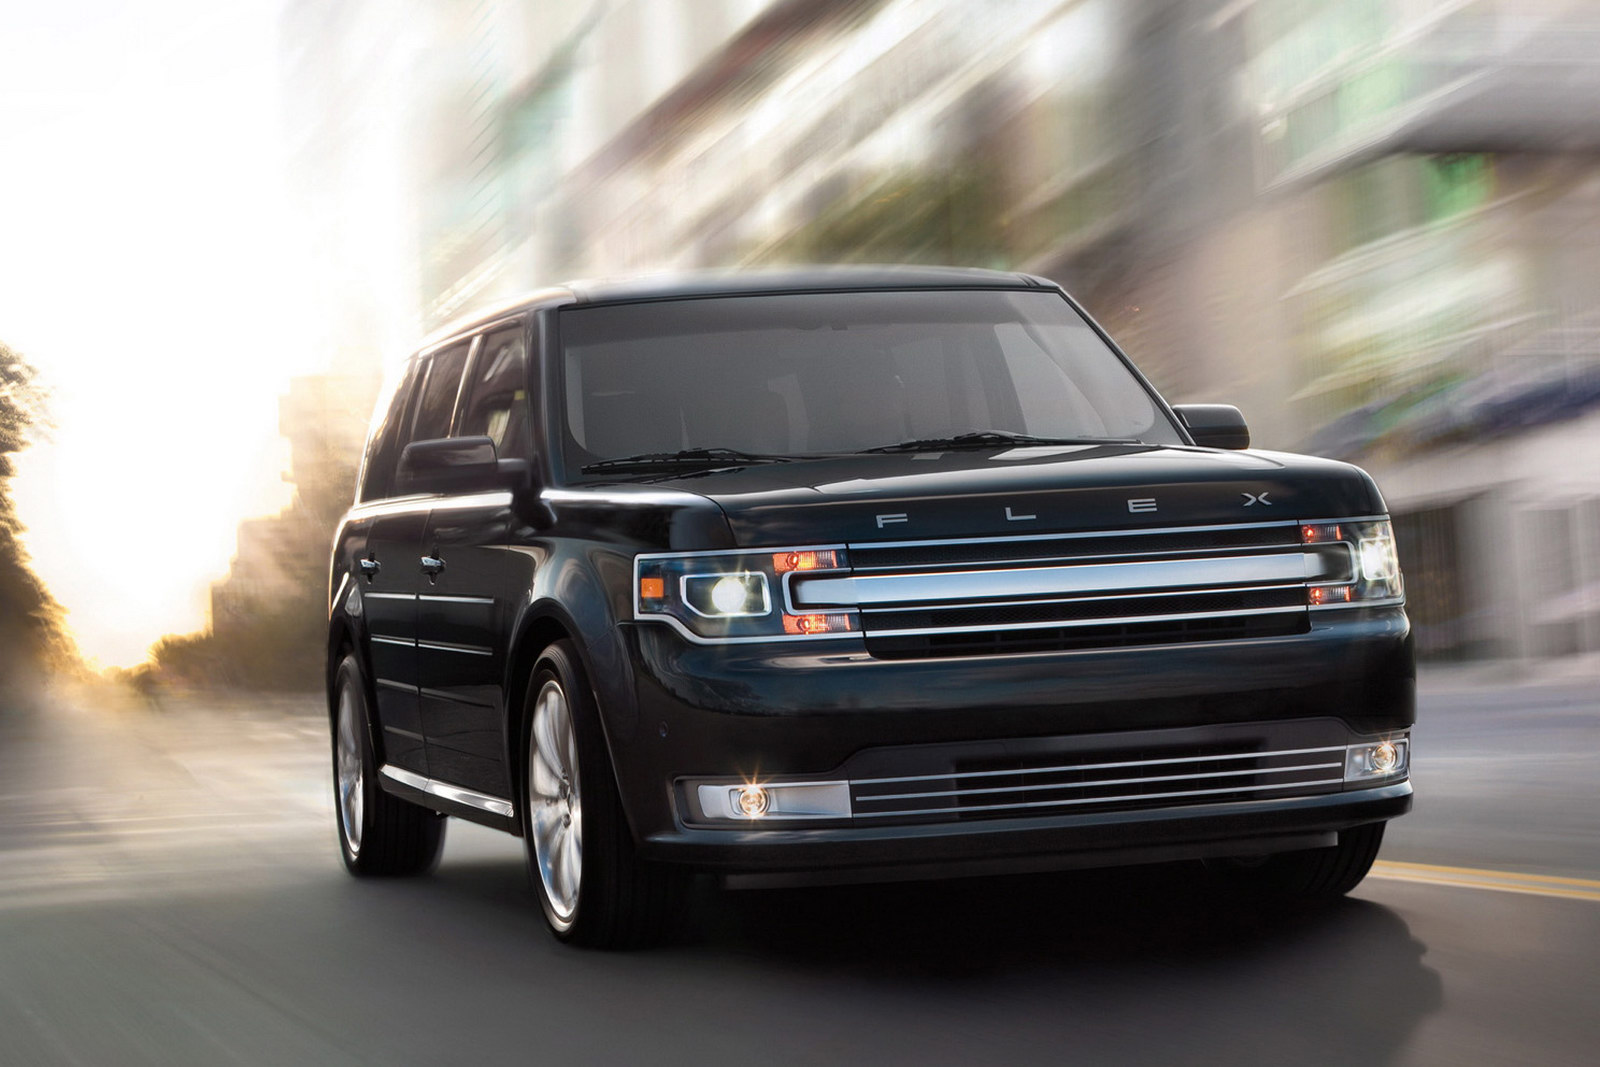 2013 Ford Flex Nip and Tuck 2 Ford introduces an updated version of Flex for 2013